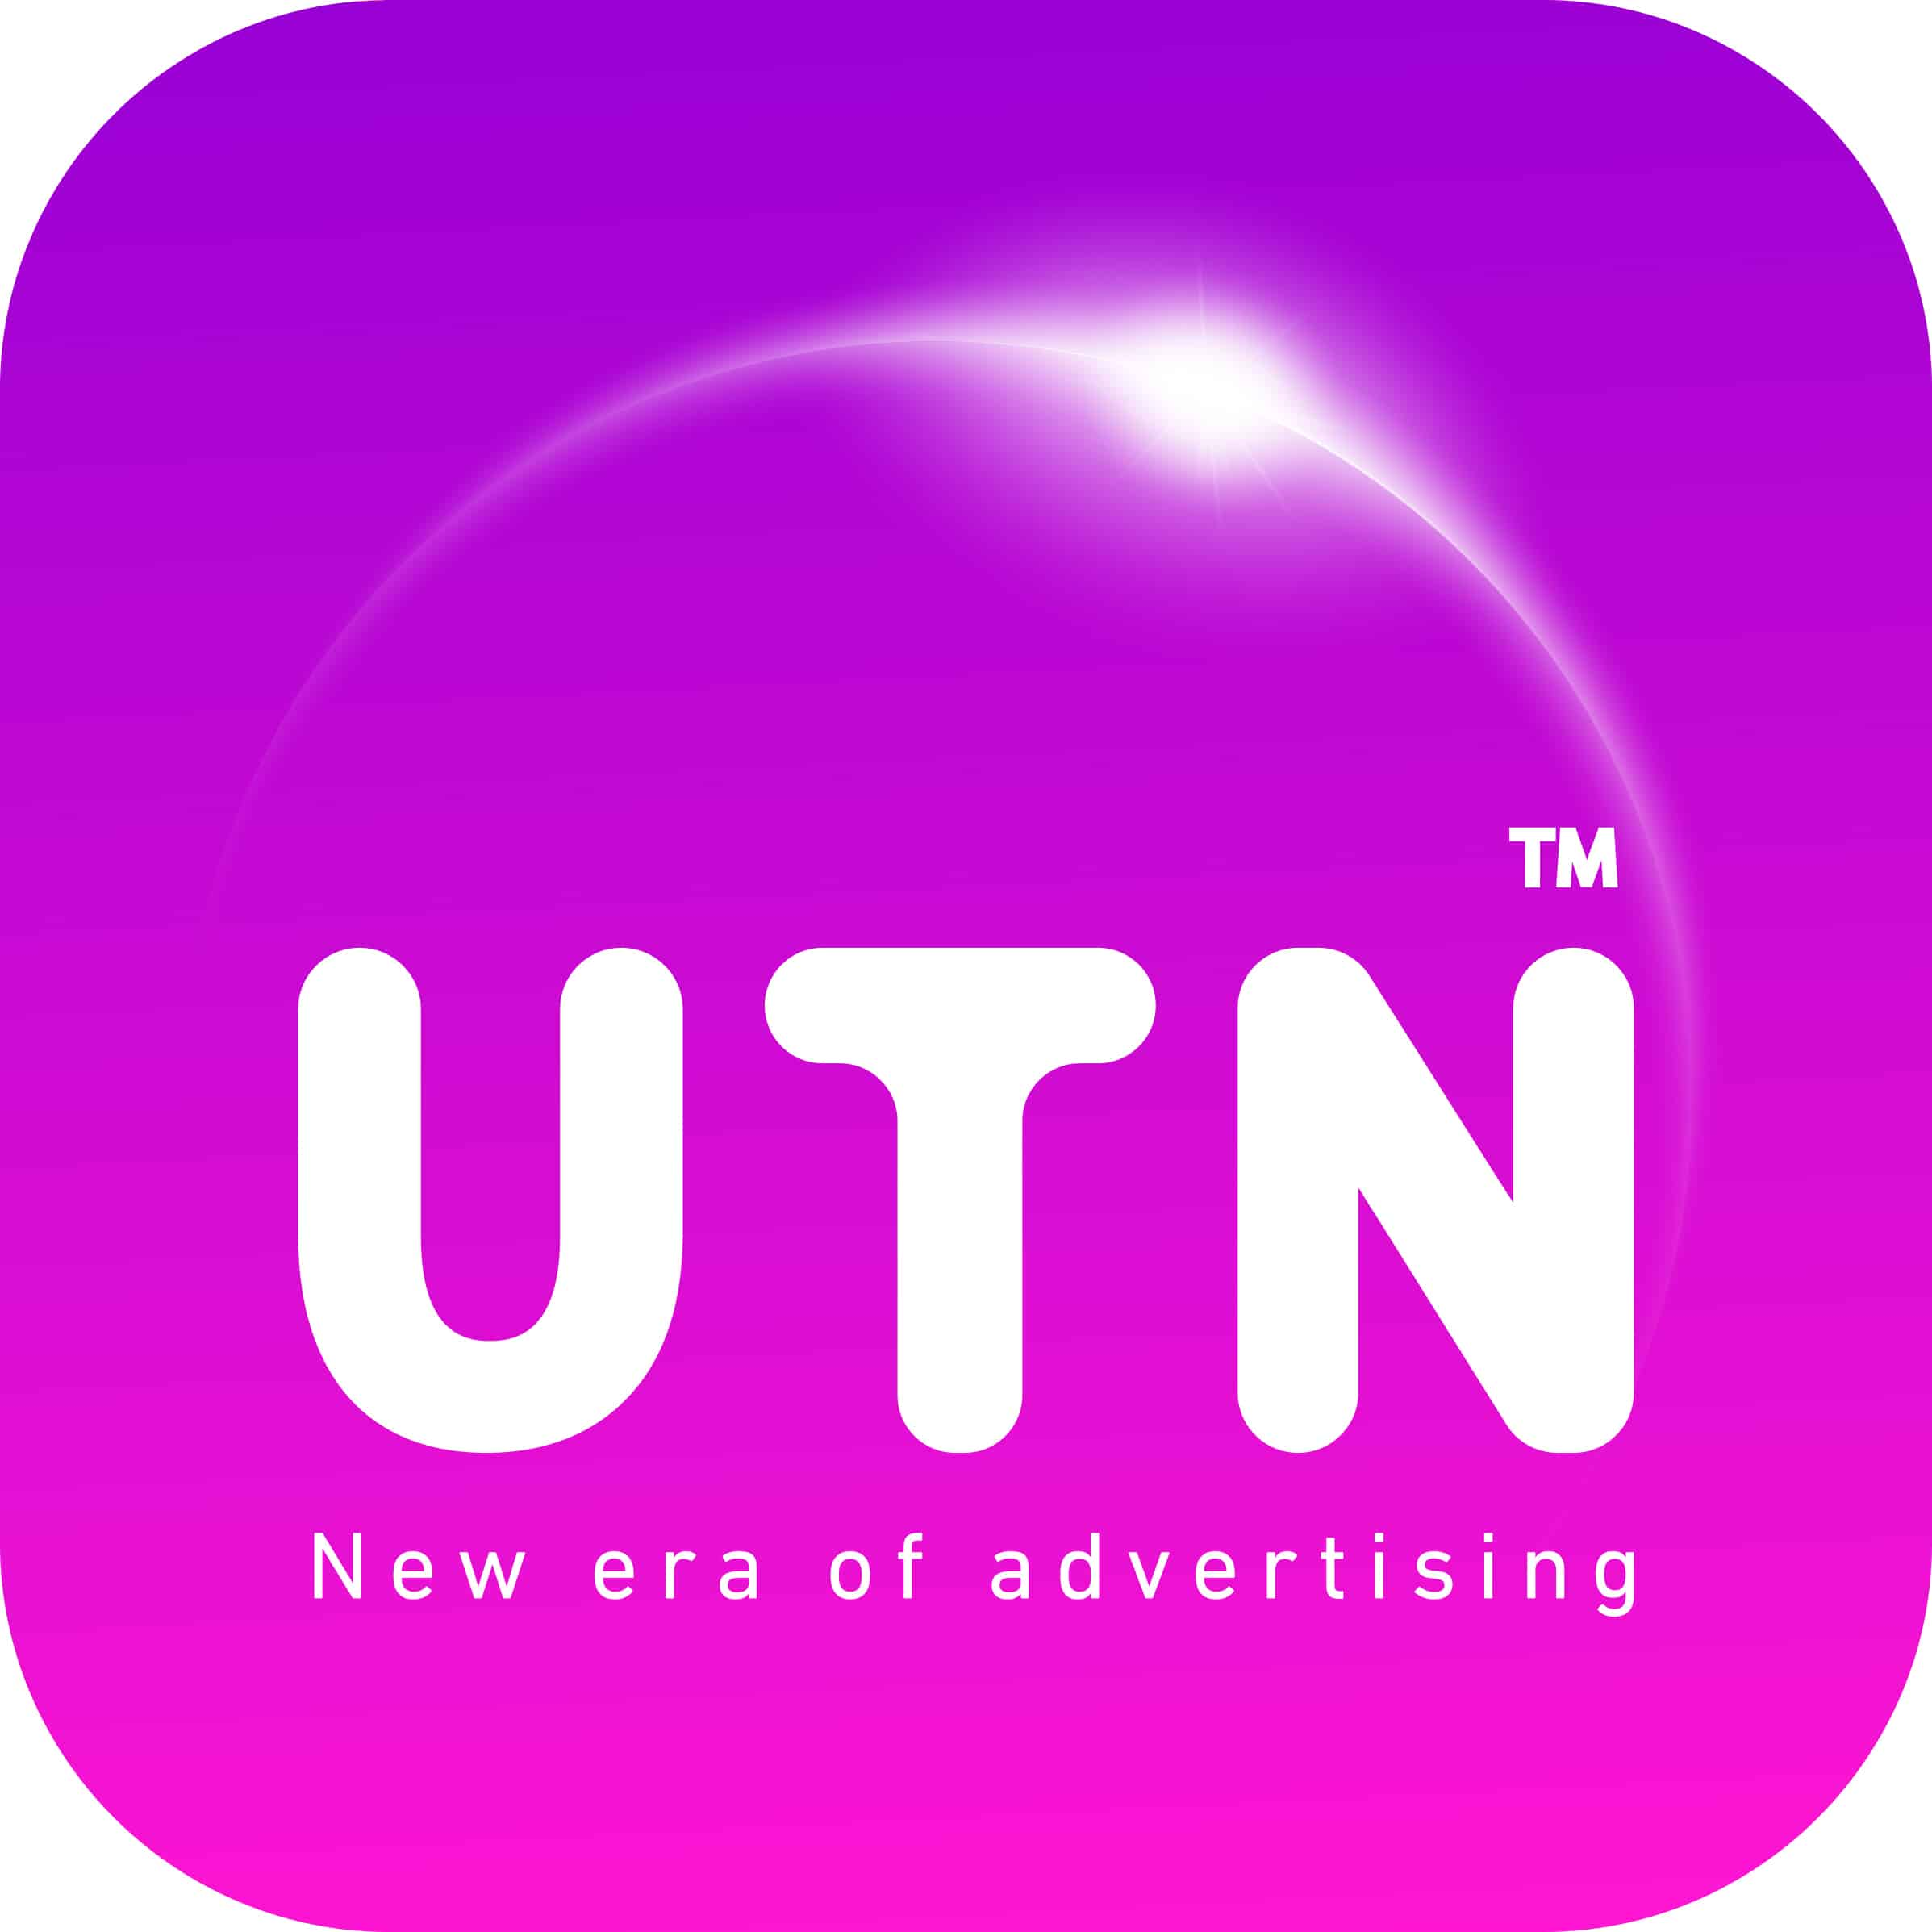 UTN - new era of advertising